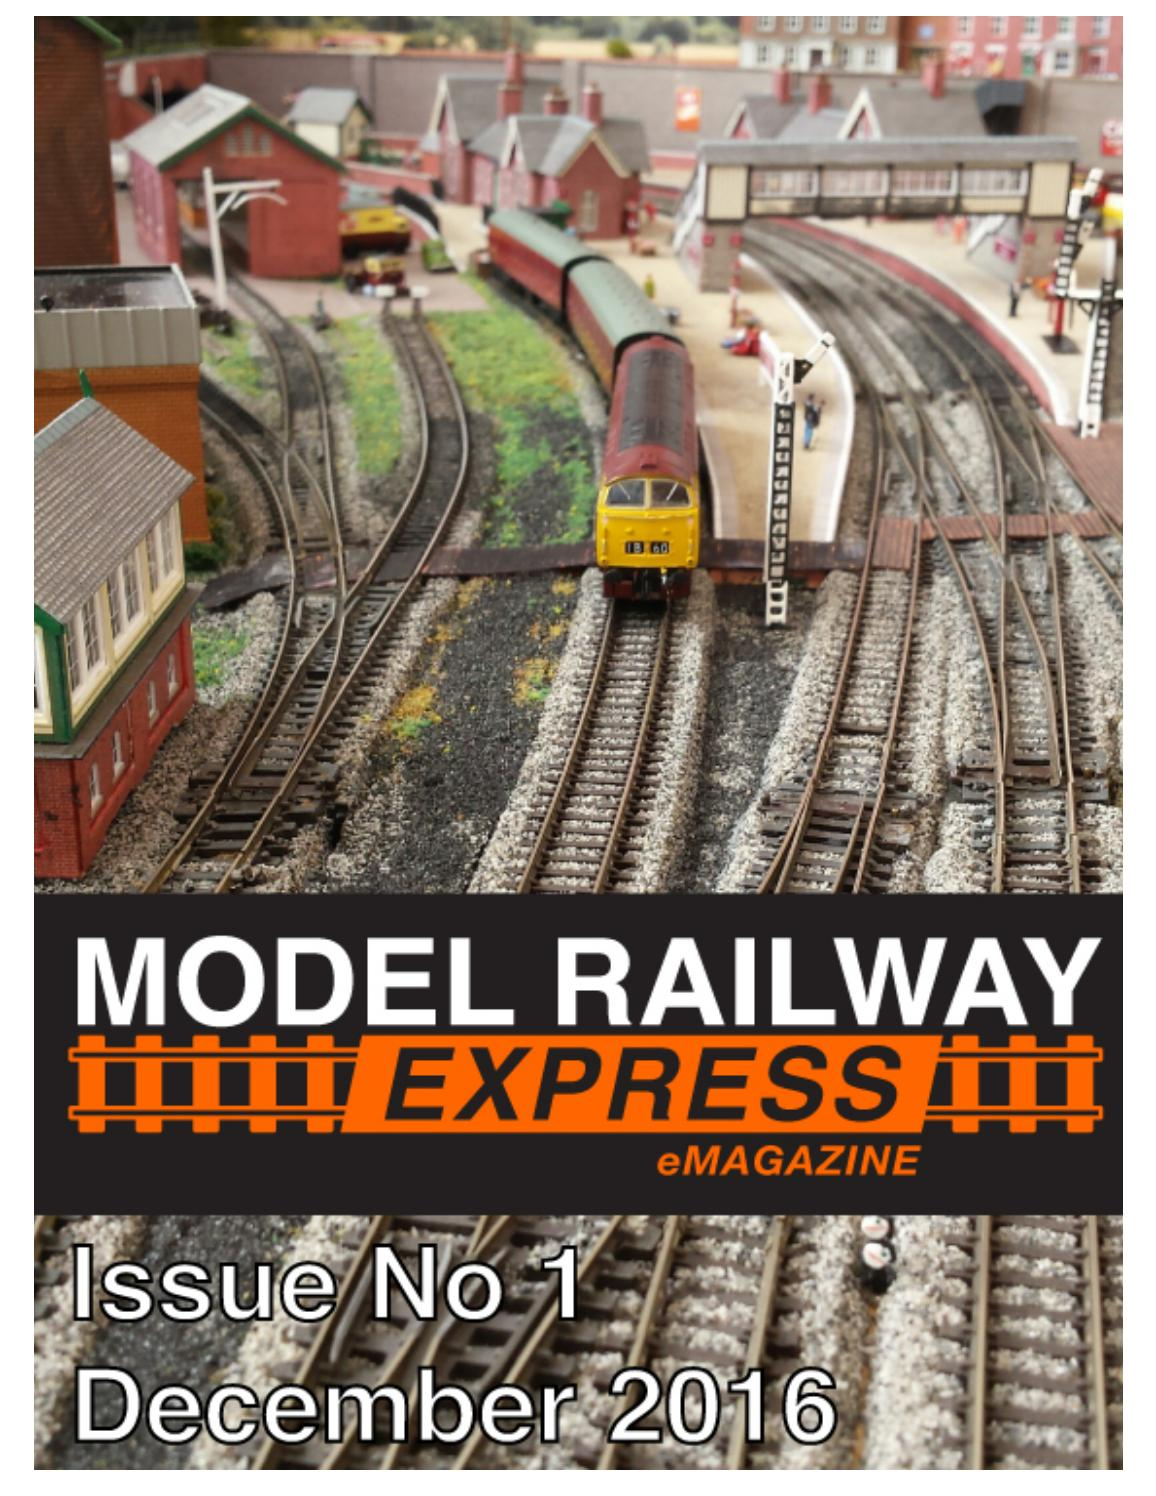 model railway express issue one december 2016 by drm